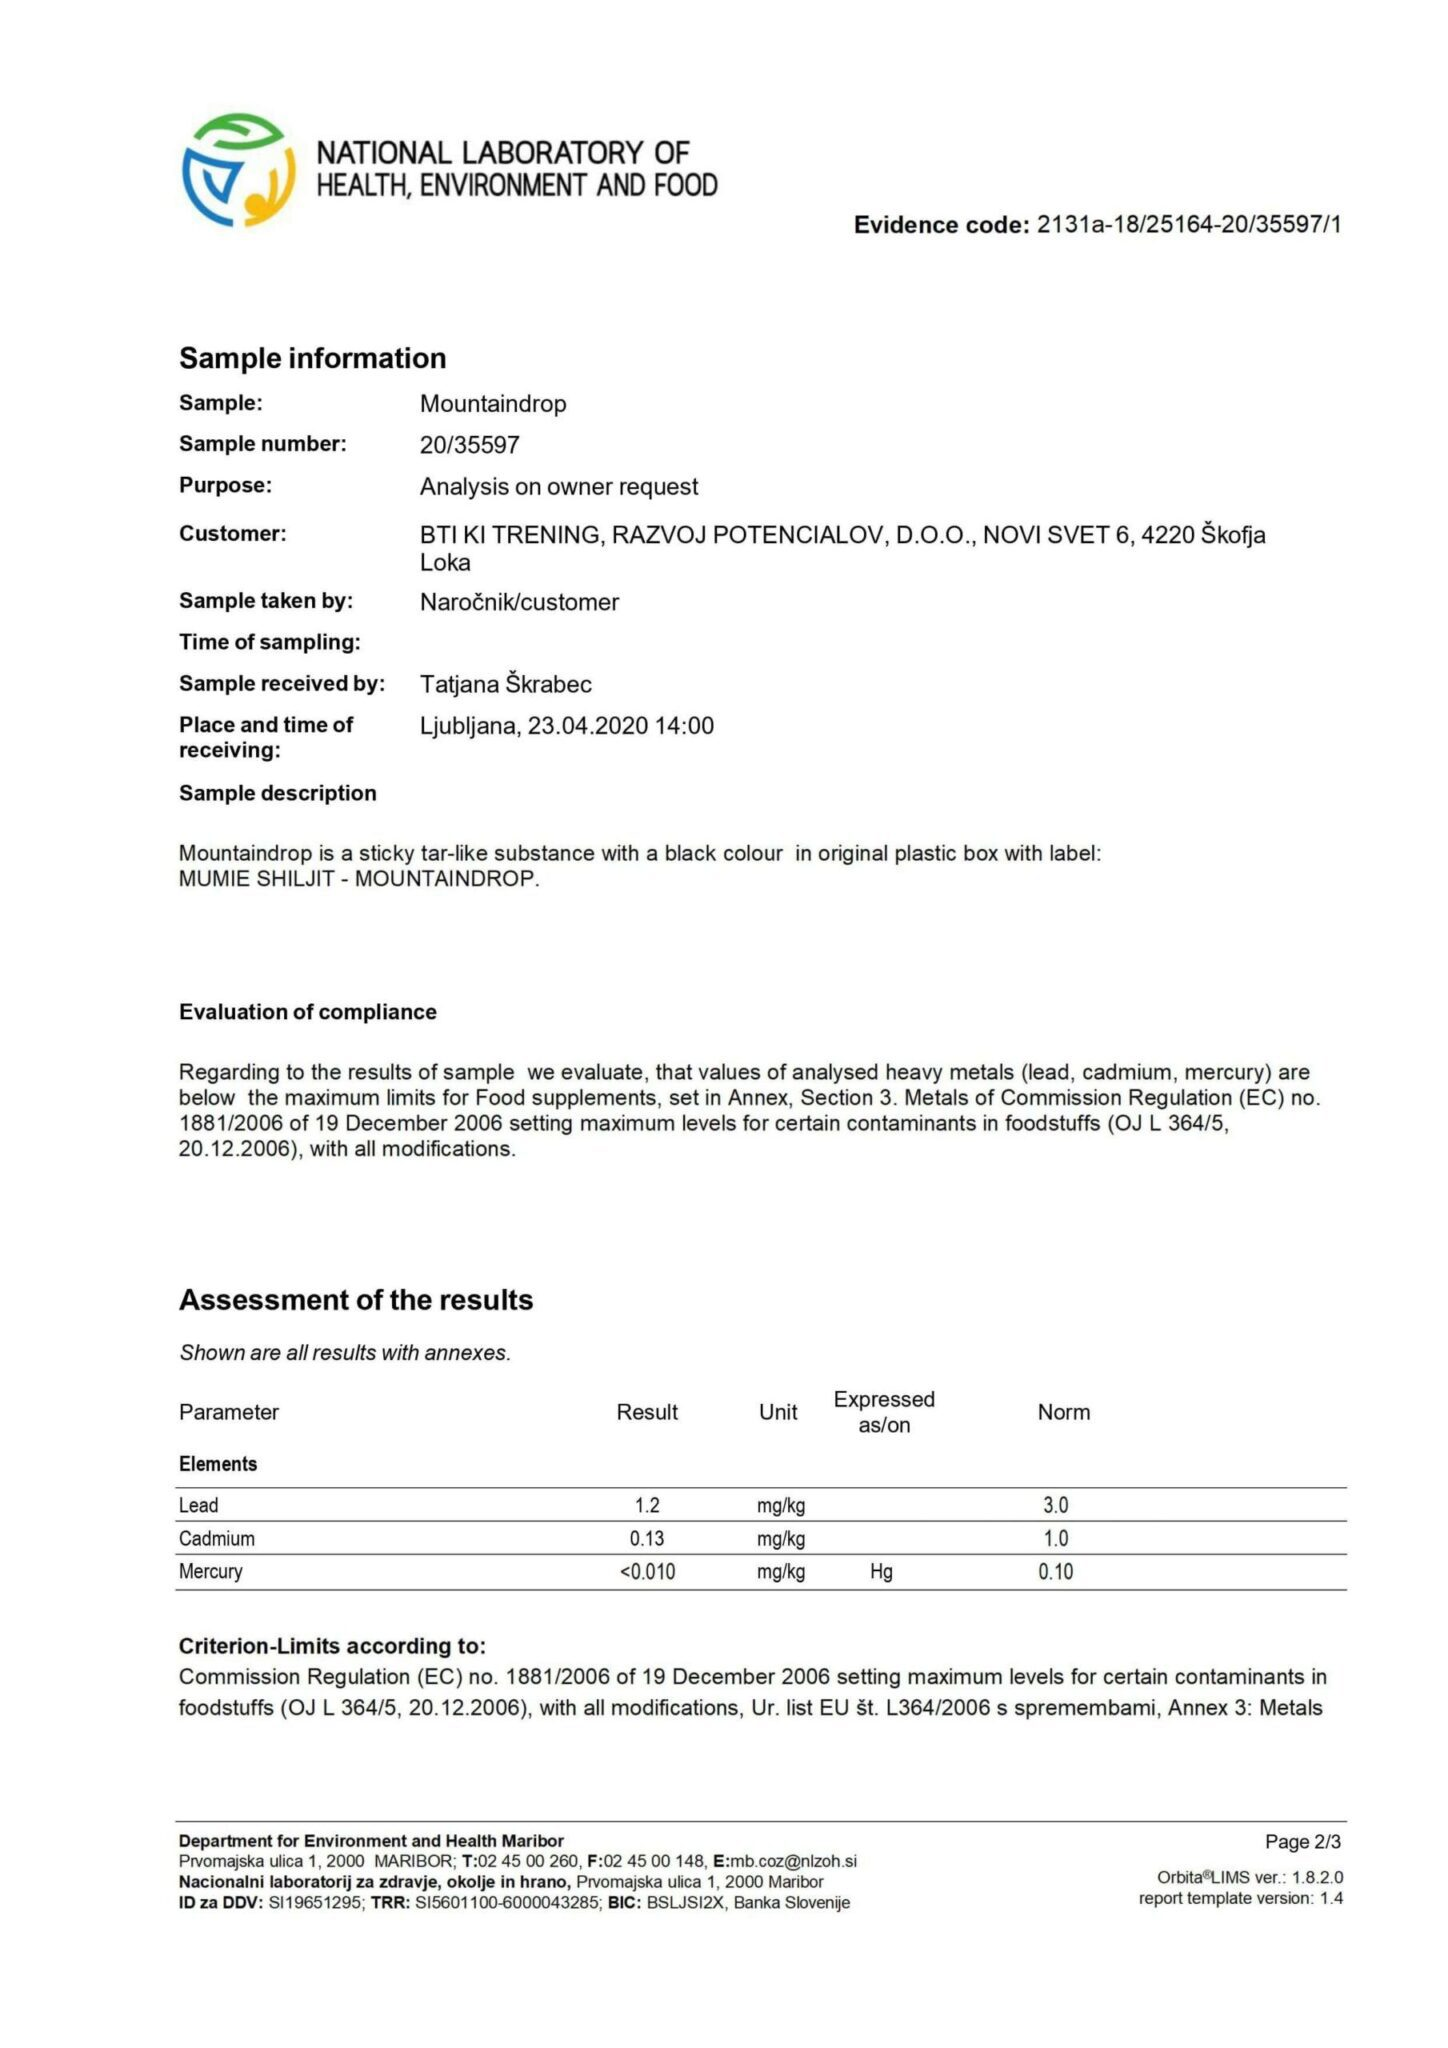 An image displaying scans of safety report for the mountaindrop product scan two